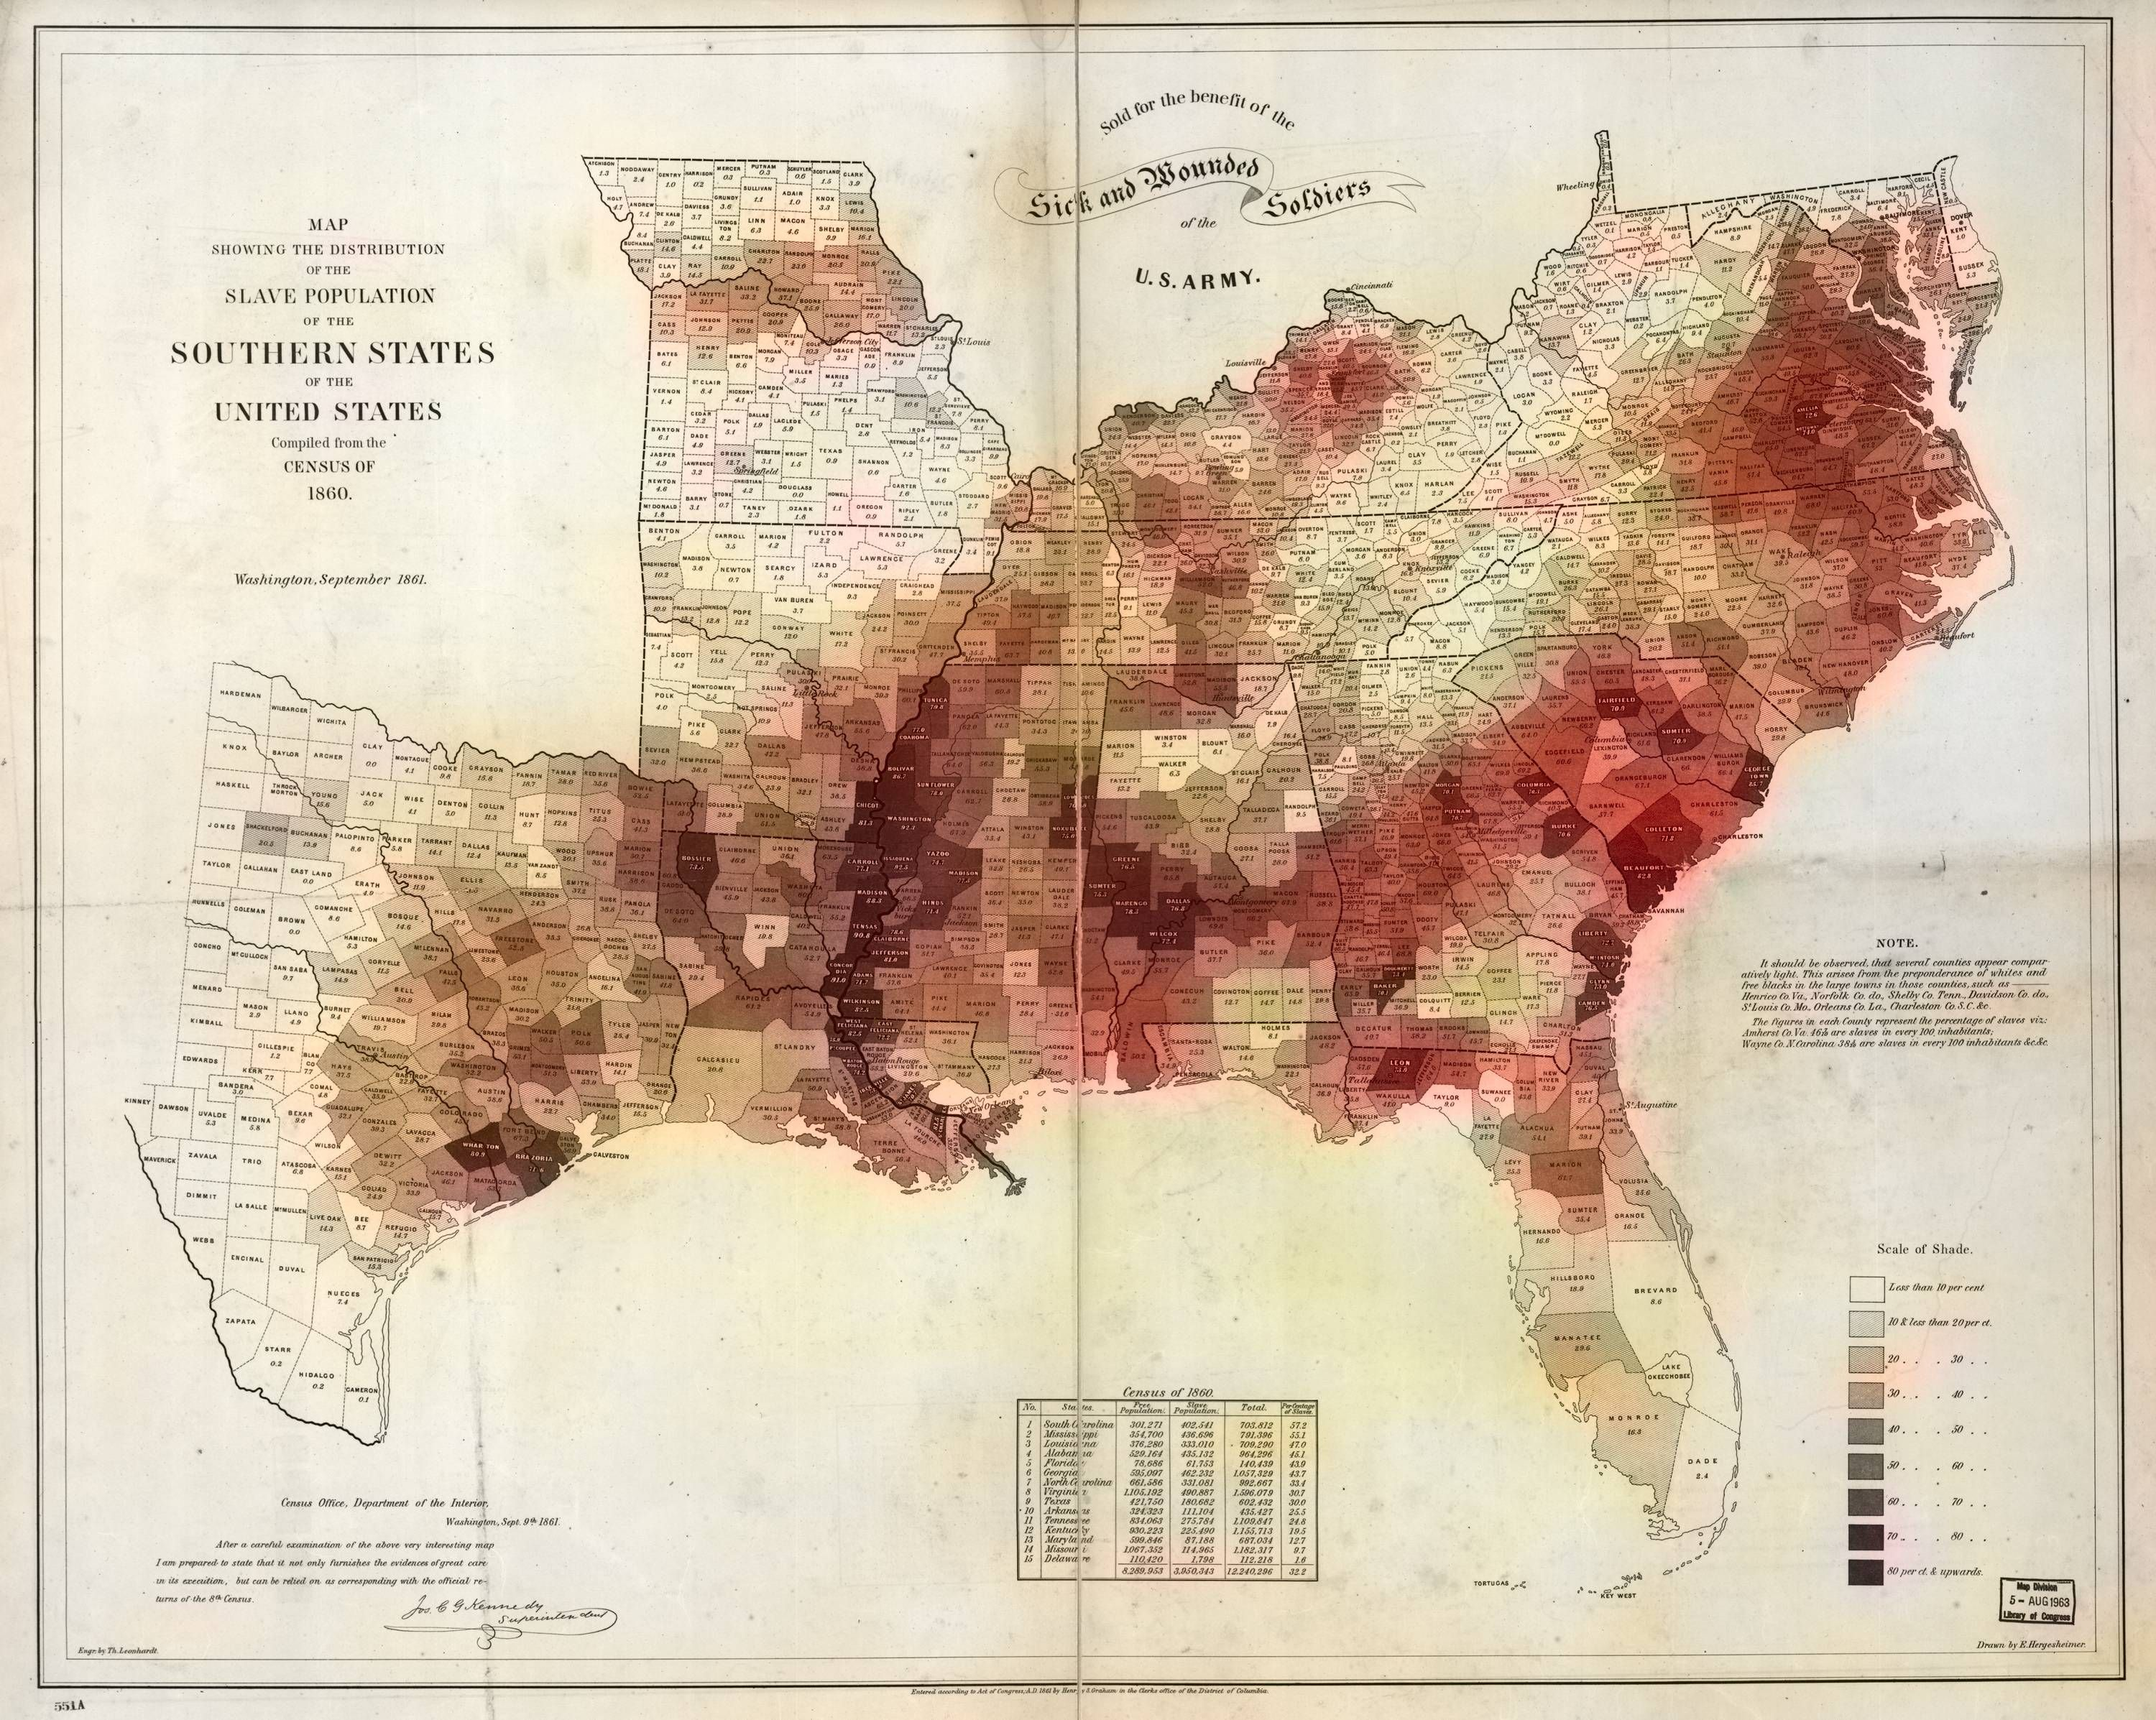 Map showing the Slave Population of Southern